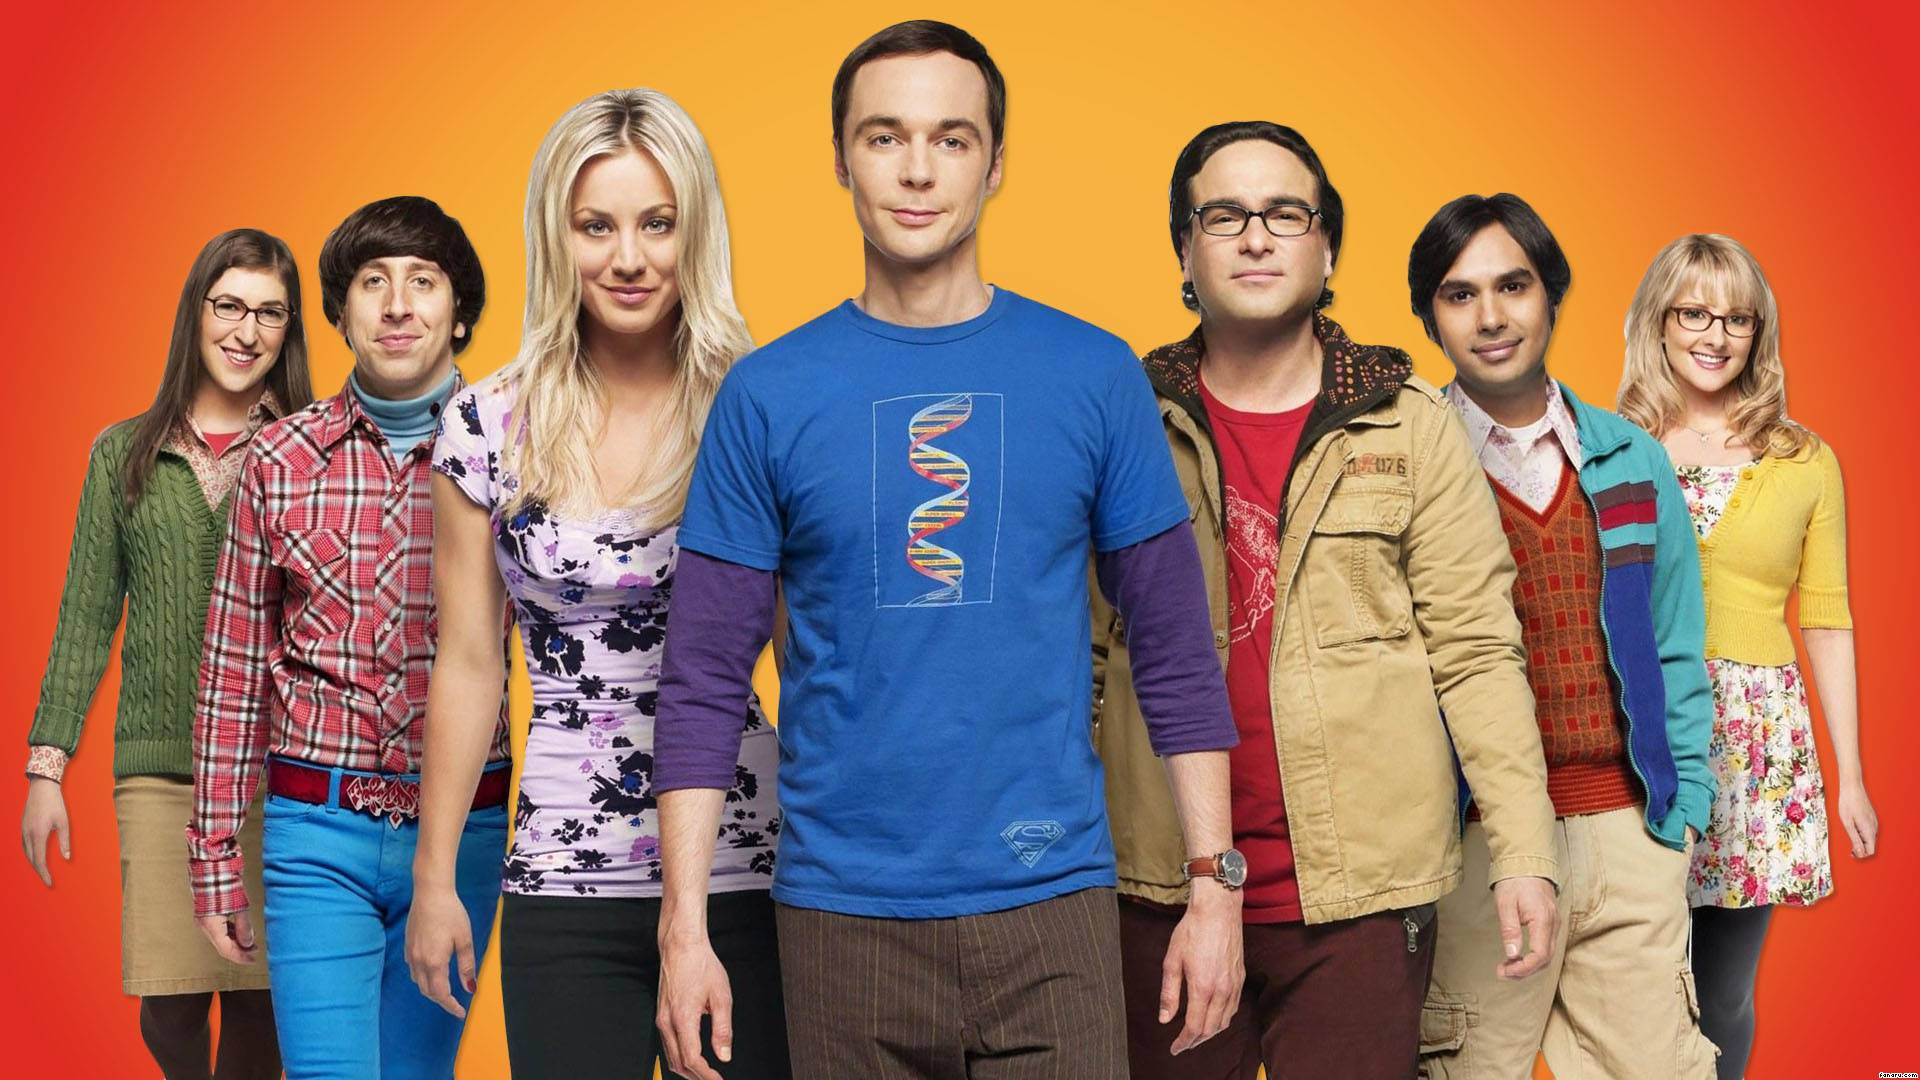 'The Big Bang Theory': Will Long-Awaited Relationships Last?